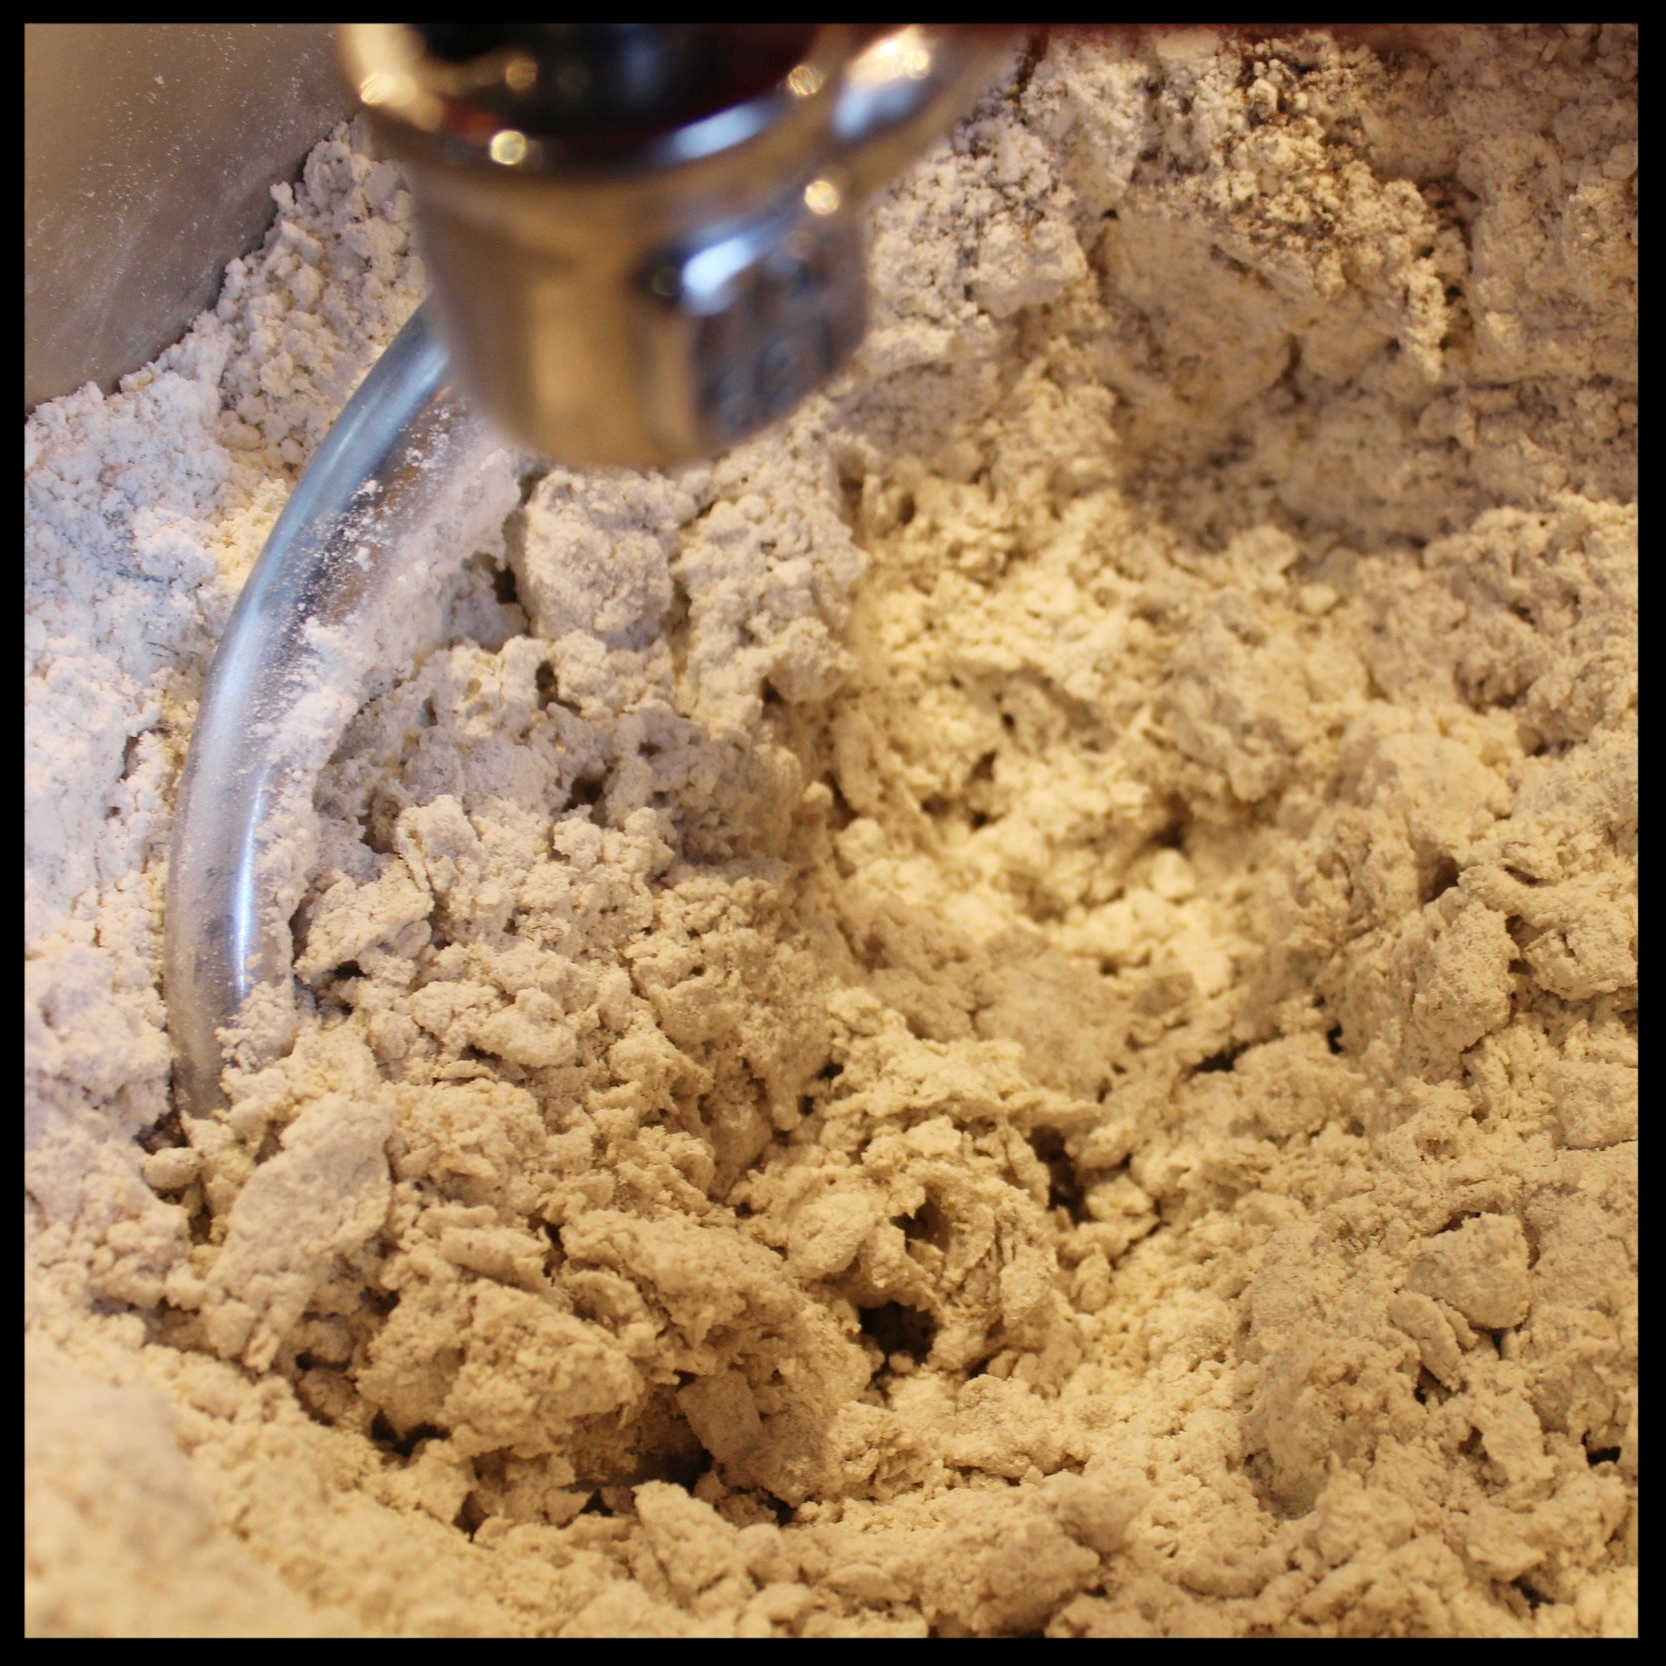 4. Mix on medium until your dough looks like dry clods of dirt, as above. If doing by hand, mix until it's shaggy.